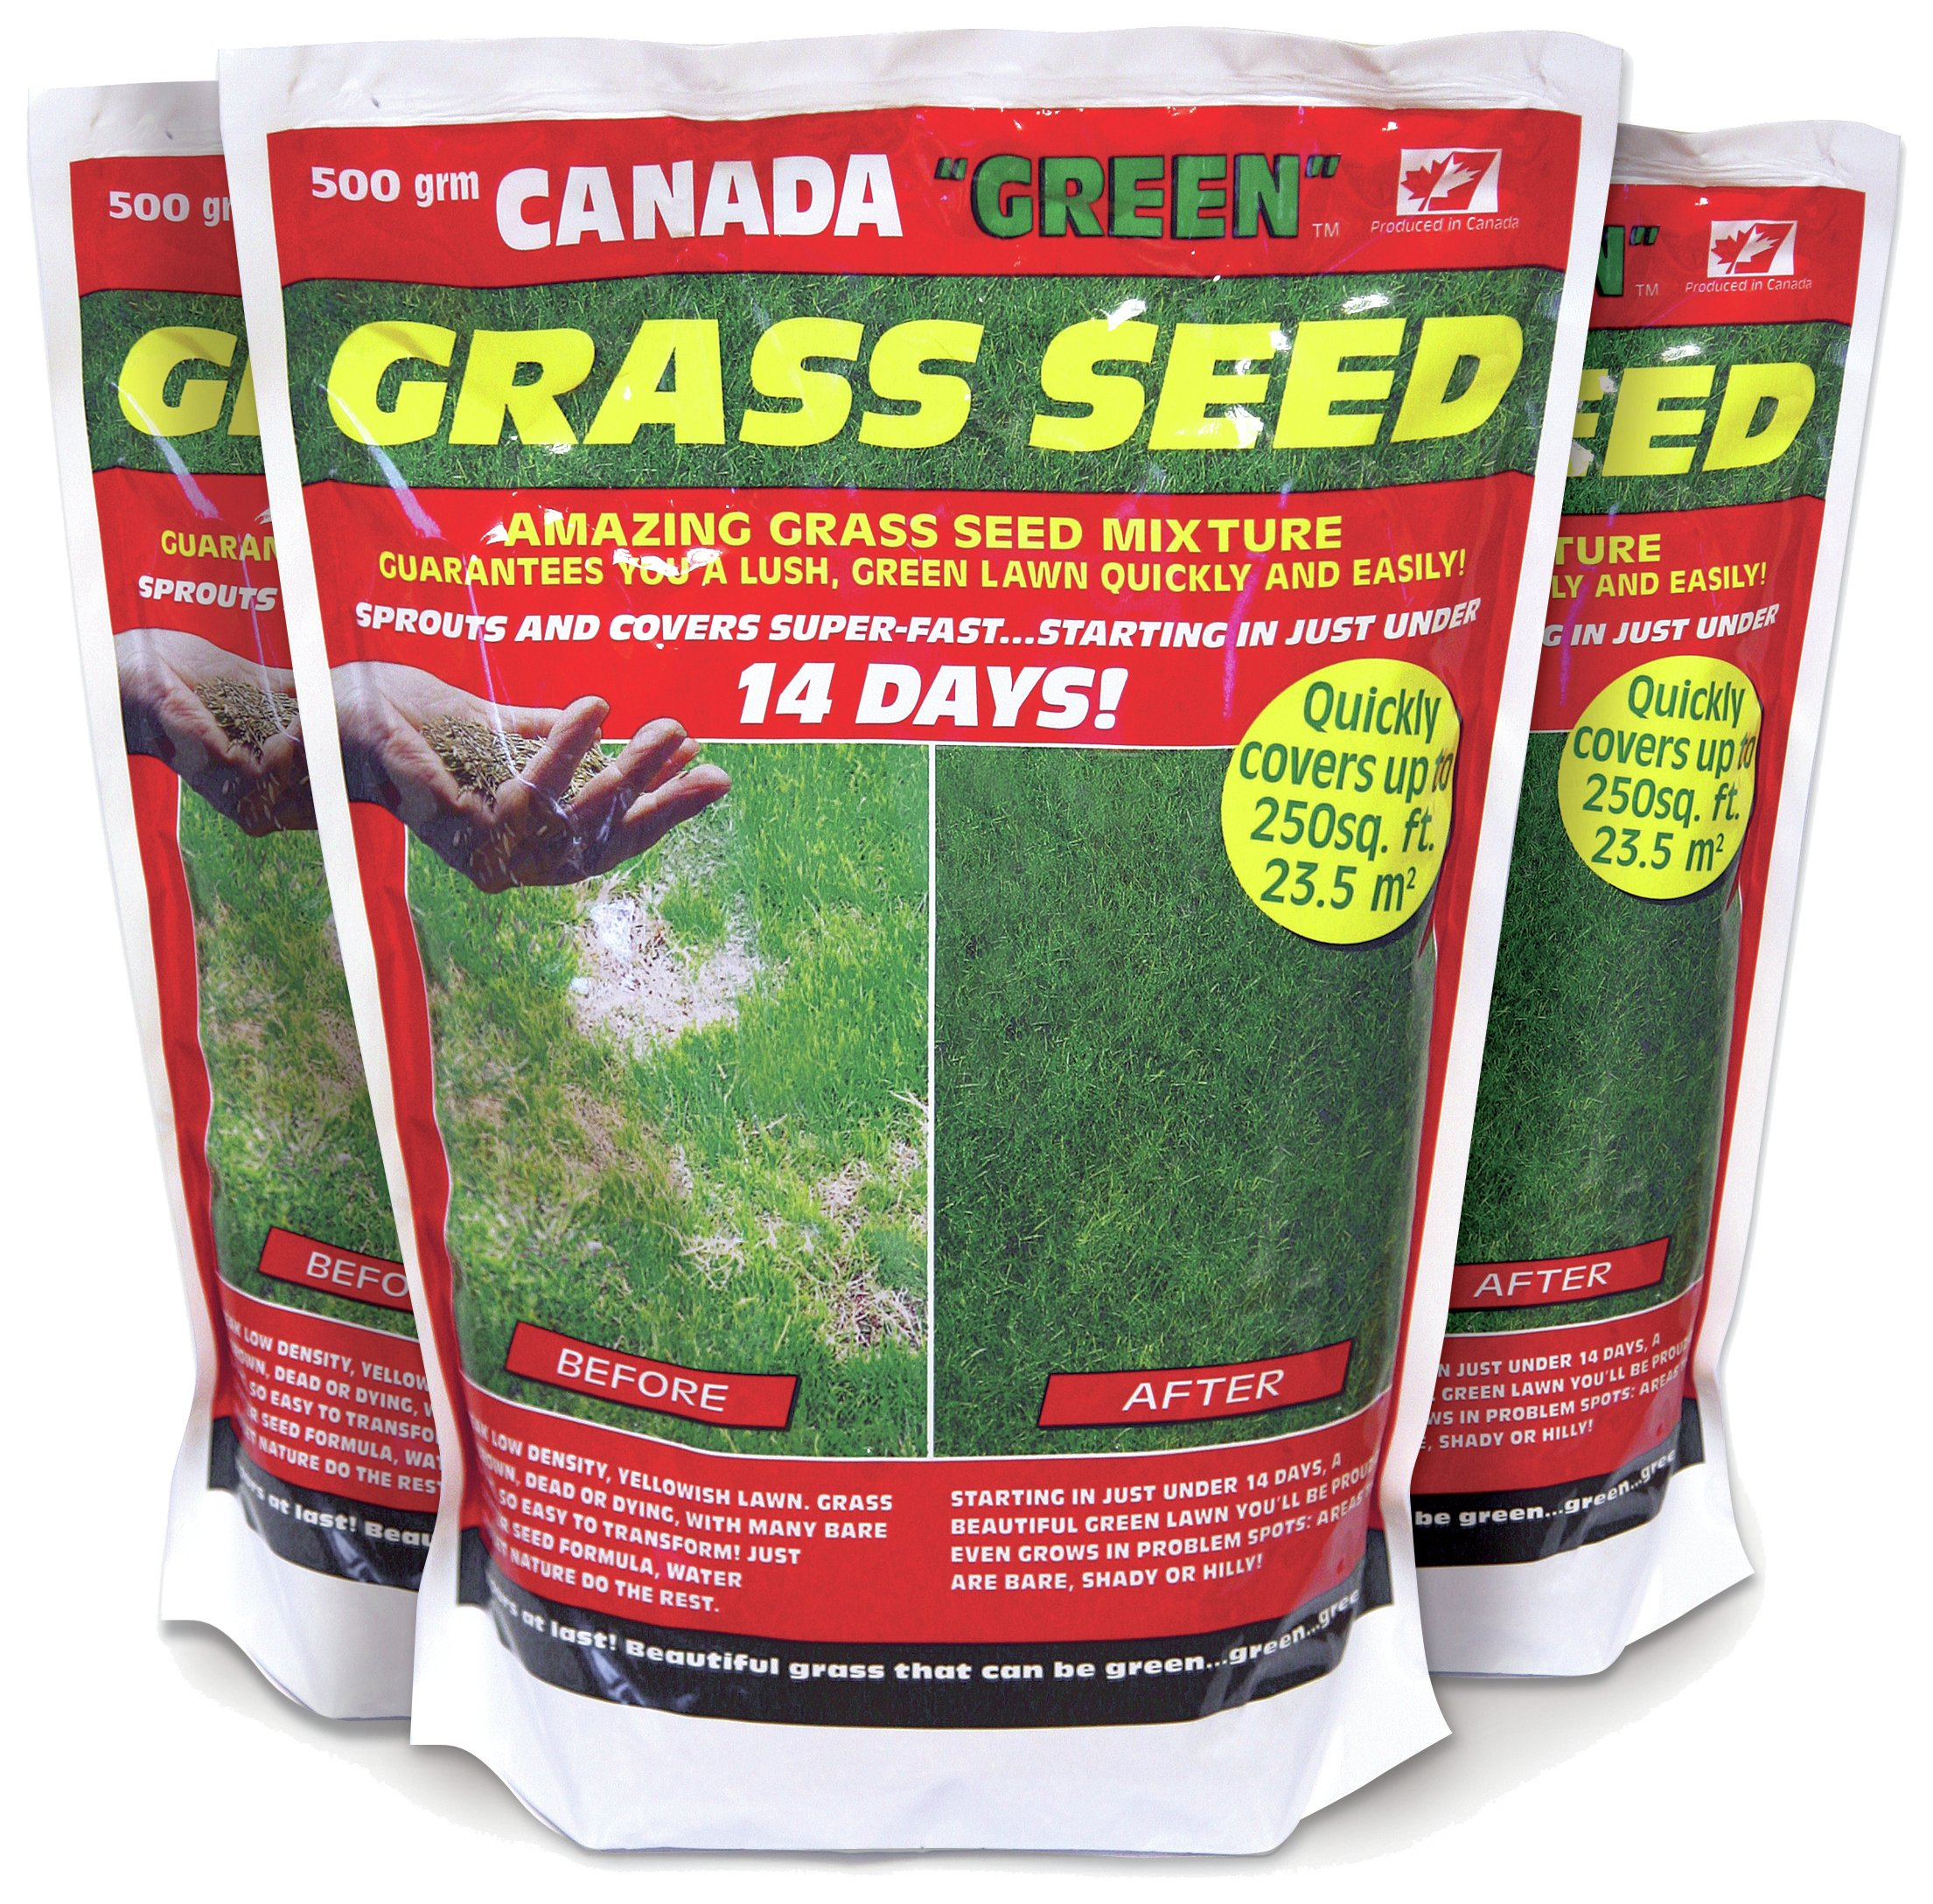 Image of Canada Green Grass Seed Pack - 500g - Buy 2 Get 1 Free.